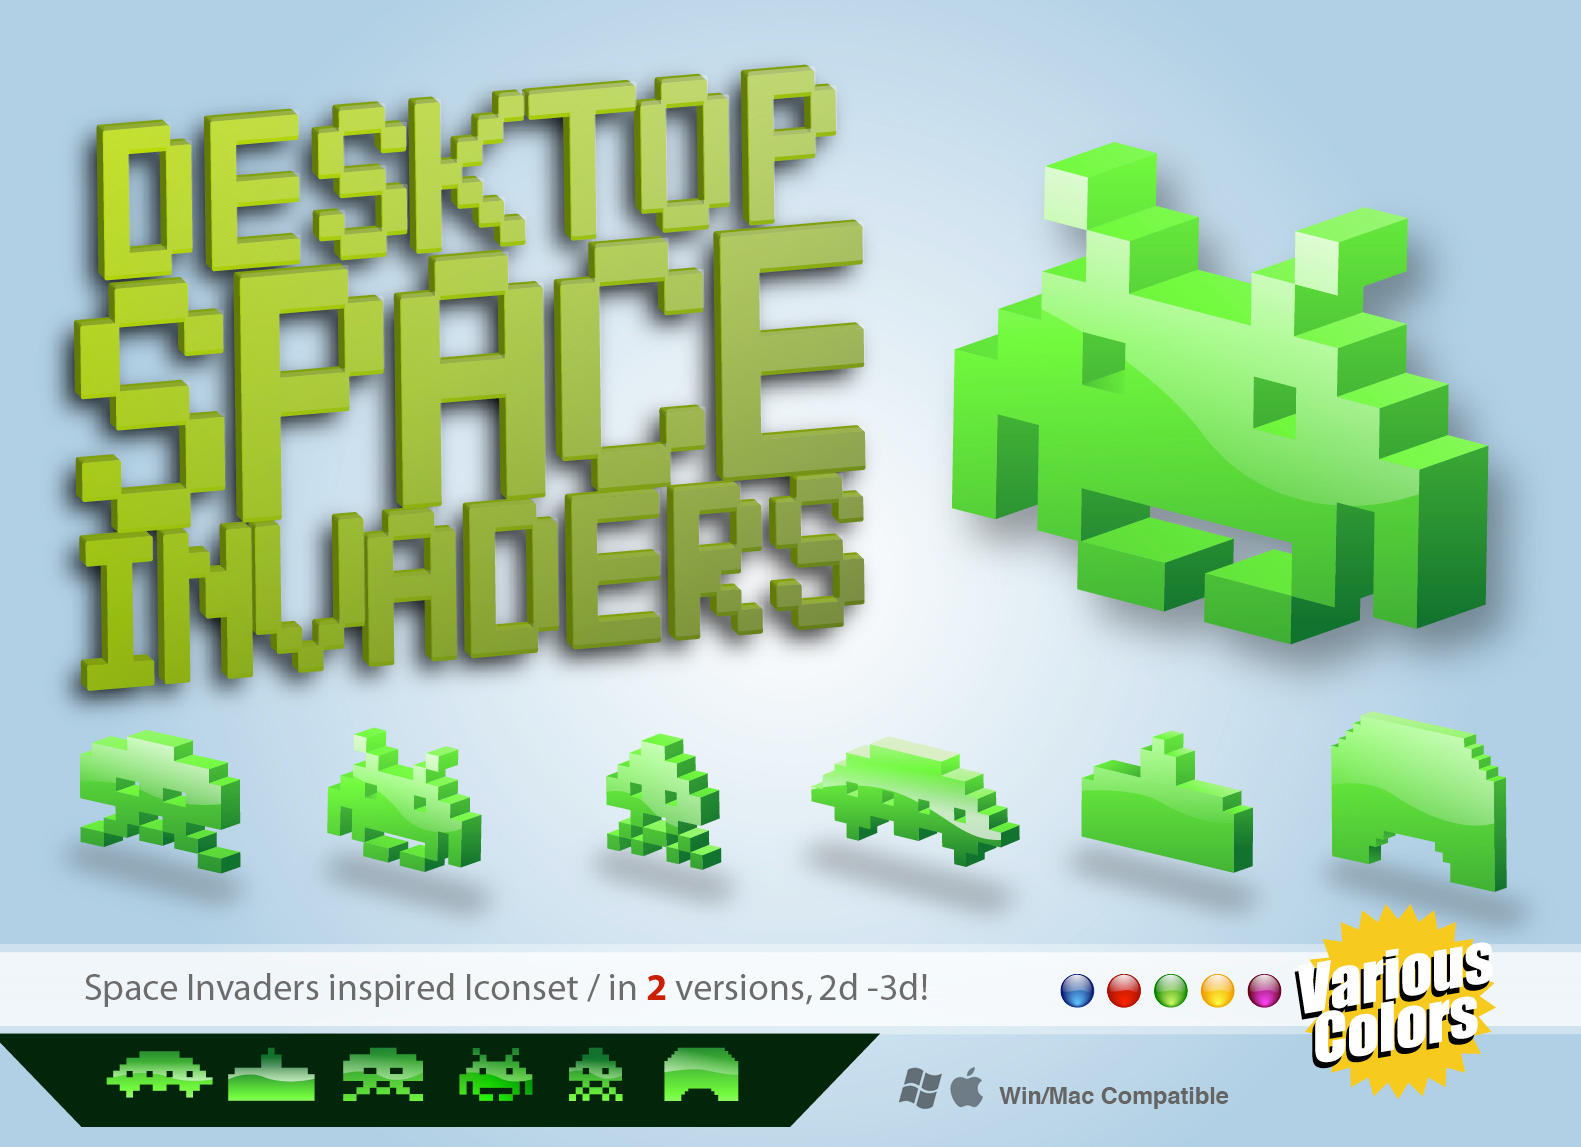 Desktop Space Invaders Iconset by Mawz